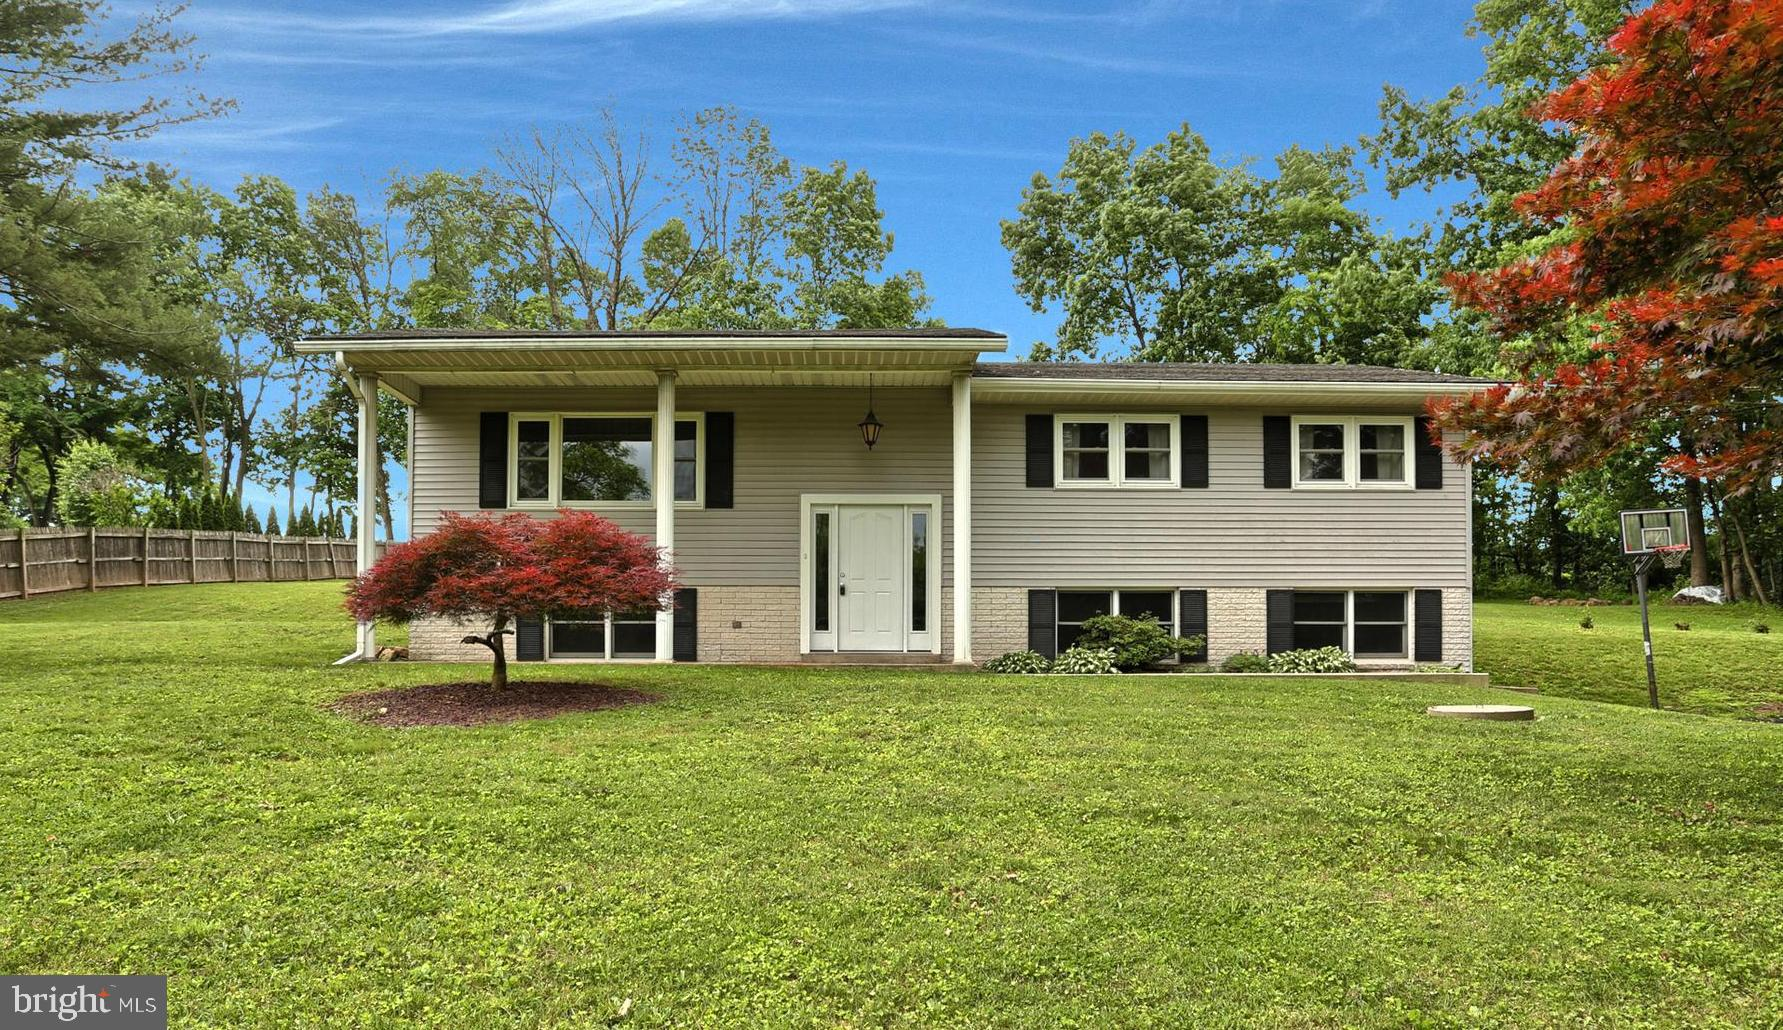 20 WILD CHERRY ROAD, SCHUYLKILL HAVEN, PA 17972